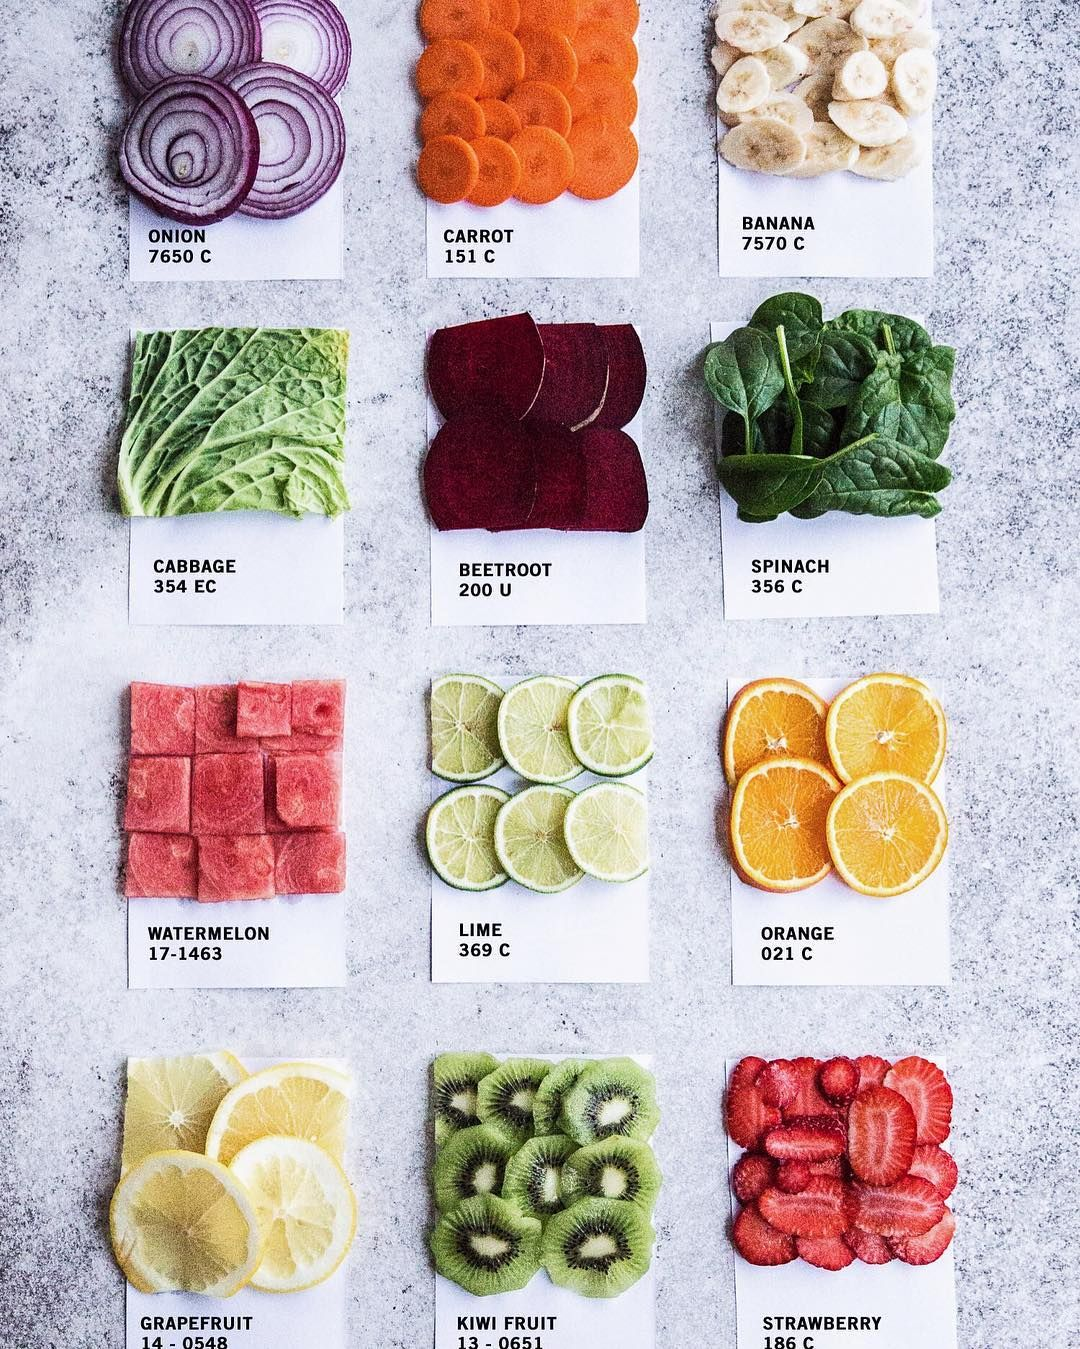 Pantone Food Colour Chips Photo And Styling Sneh Roy Cook Republic Photographing Food Food Flatlay Food